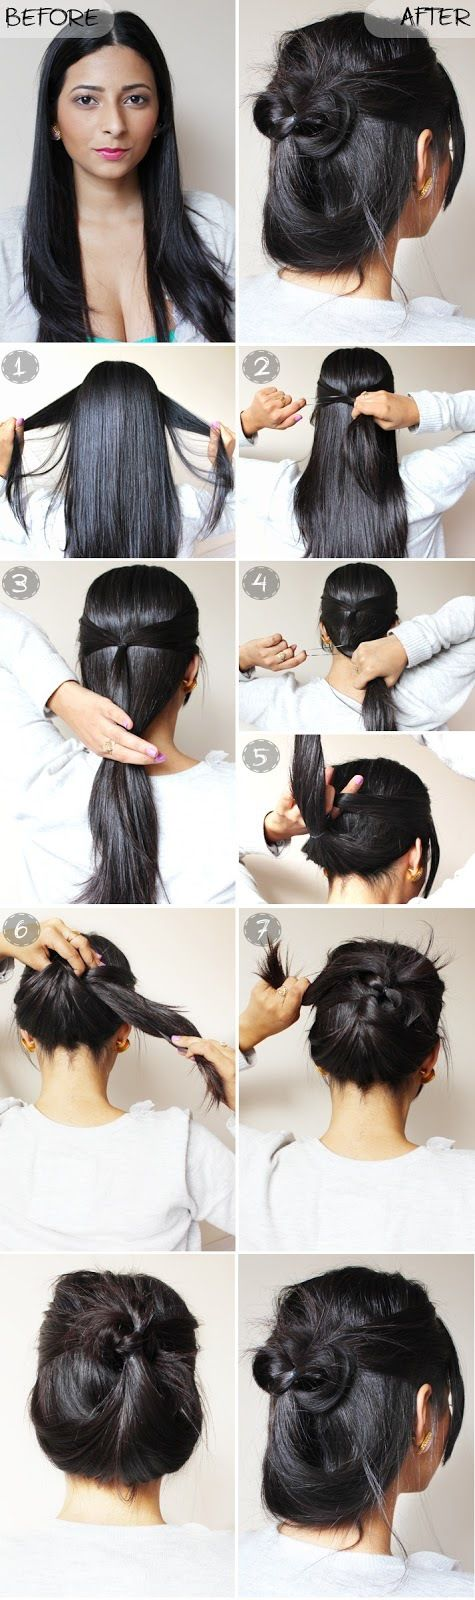 11 Best Diy Hairstyle Tutorials For Your Next Going Out Shaydo